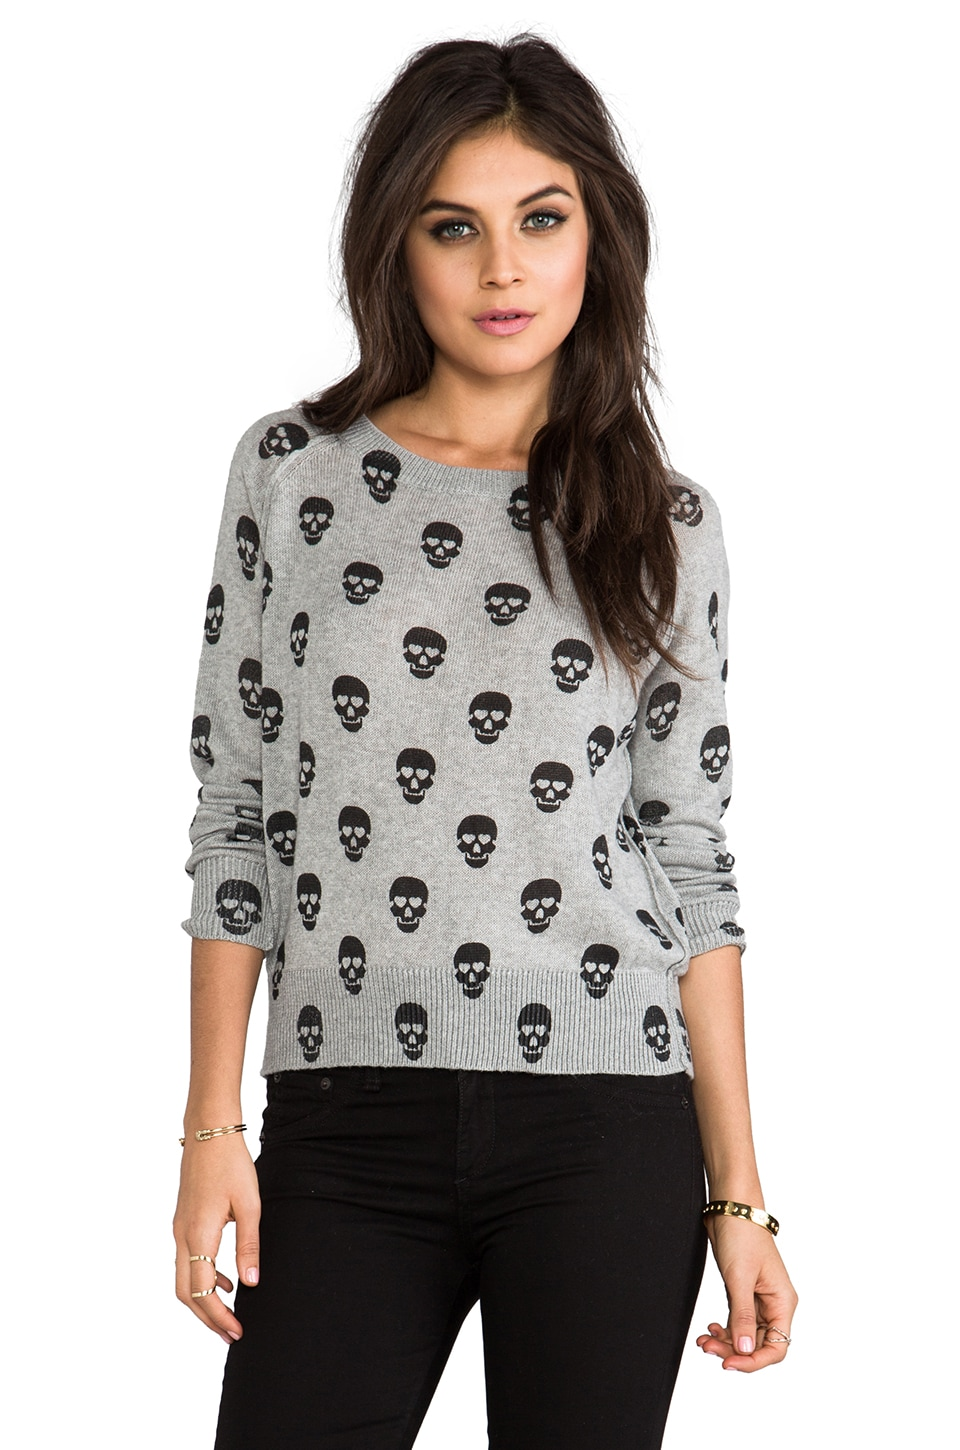 Lovers + Friends for REVOLVE Jordan Pullover in Heather Grey & Black Skulls